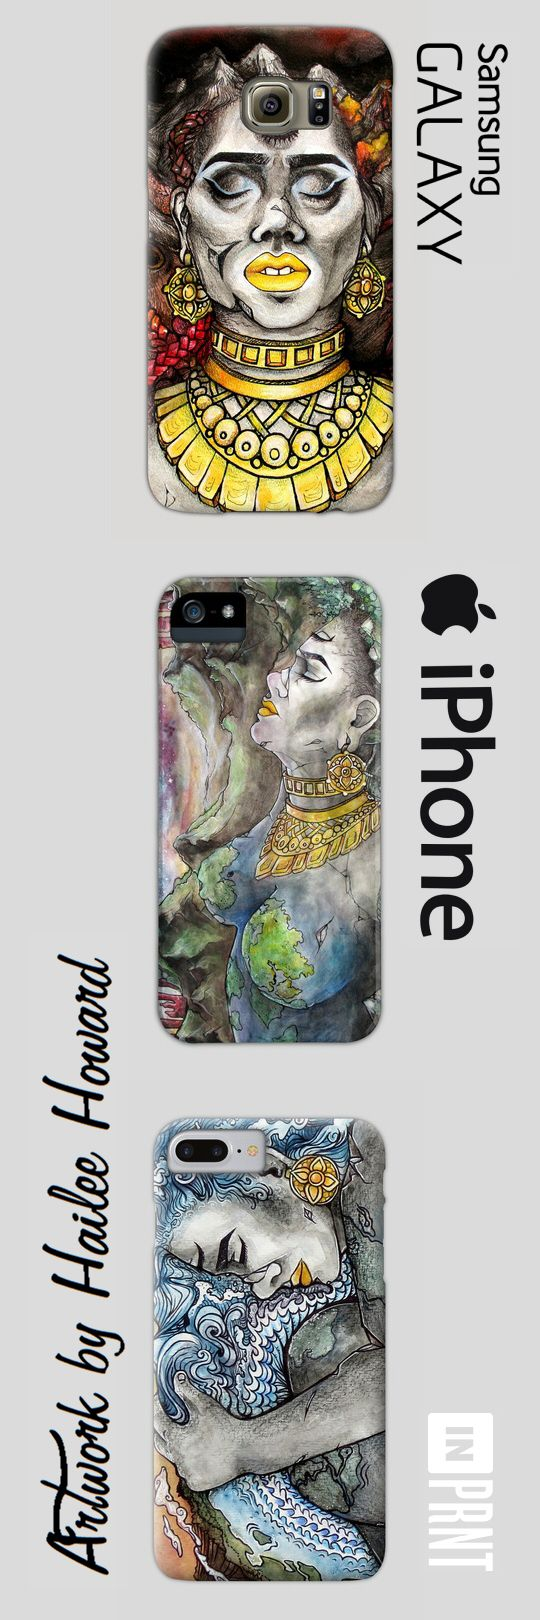 Beautifully illustrated phone cases, by Hailee Howard! Comes in sizes for the iPhone and Galaxy S series. Cases range from $25 to $35. Protect your phone from damage FASHIONABLY. Get yours now at https://www.inprnt.com/cases/haileehowardart/  #phones #iphone #samsung #galaxys $galaxys8 #iphone7 #iphonecases #phonecases #art #artwork #nature #beautiful #artist #watercolor #painting #supportheartist #cool #interesting #motherearth #vegan #vagen #earth